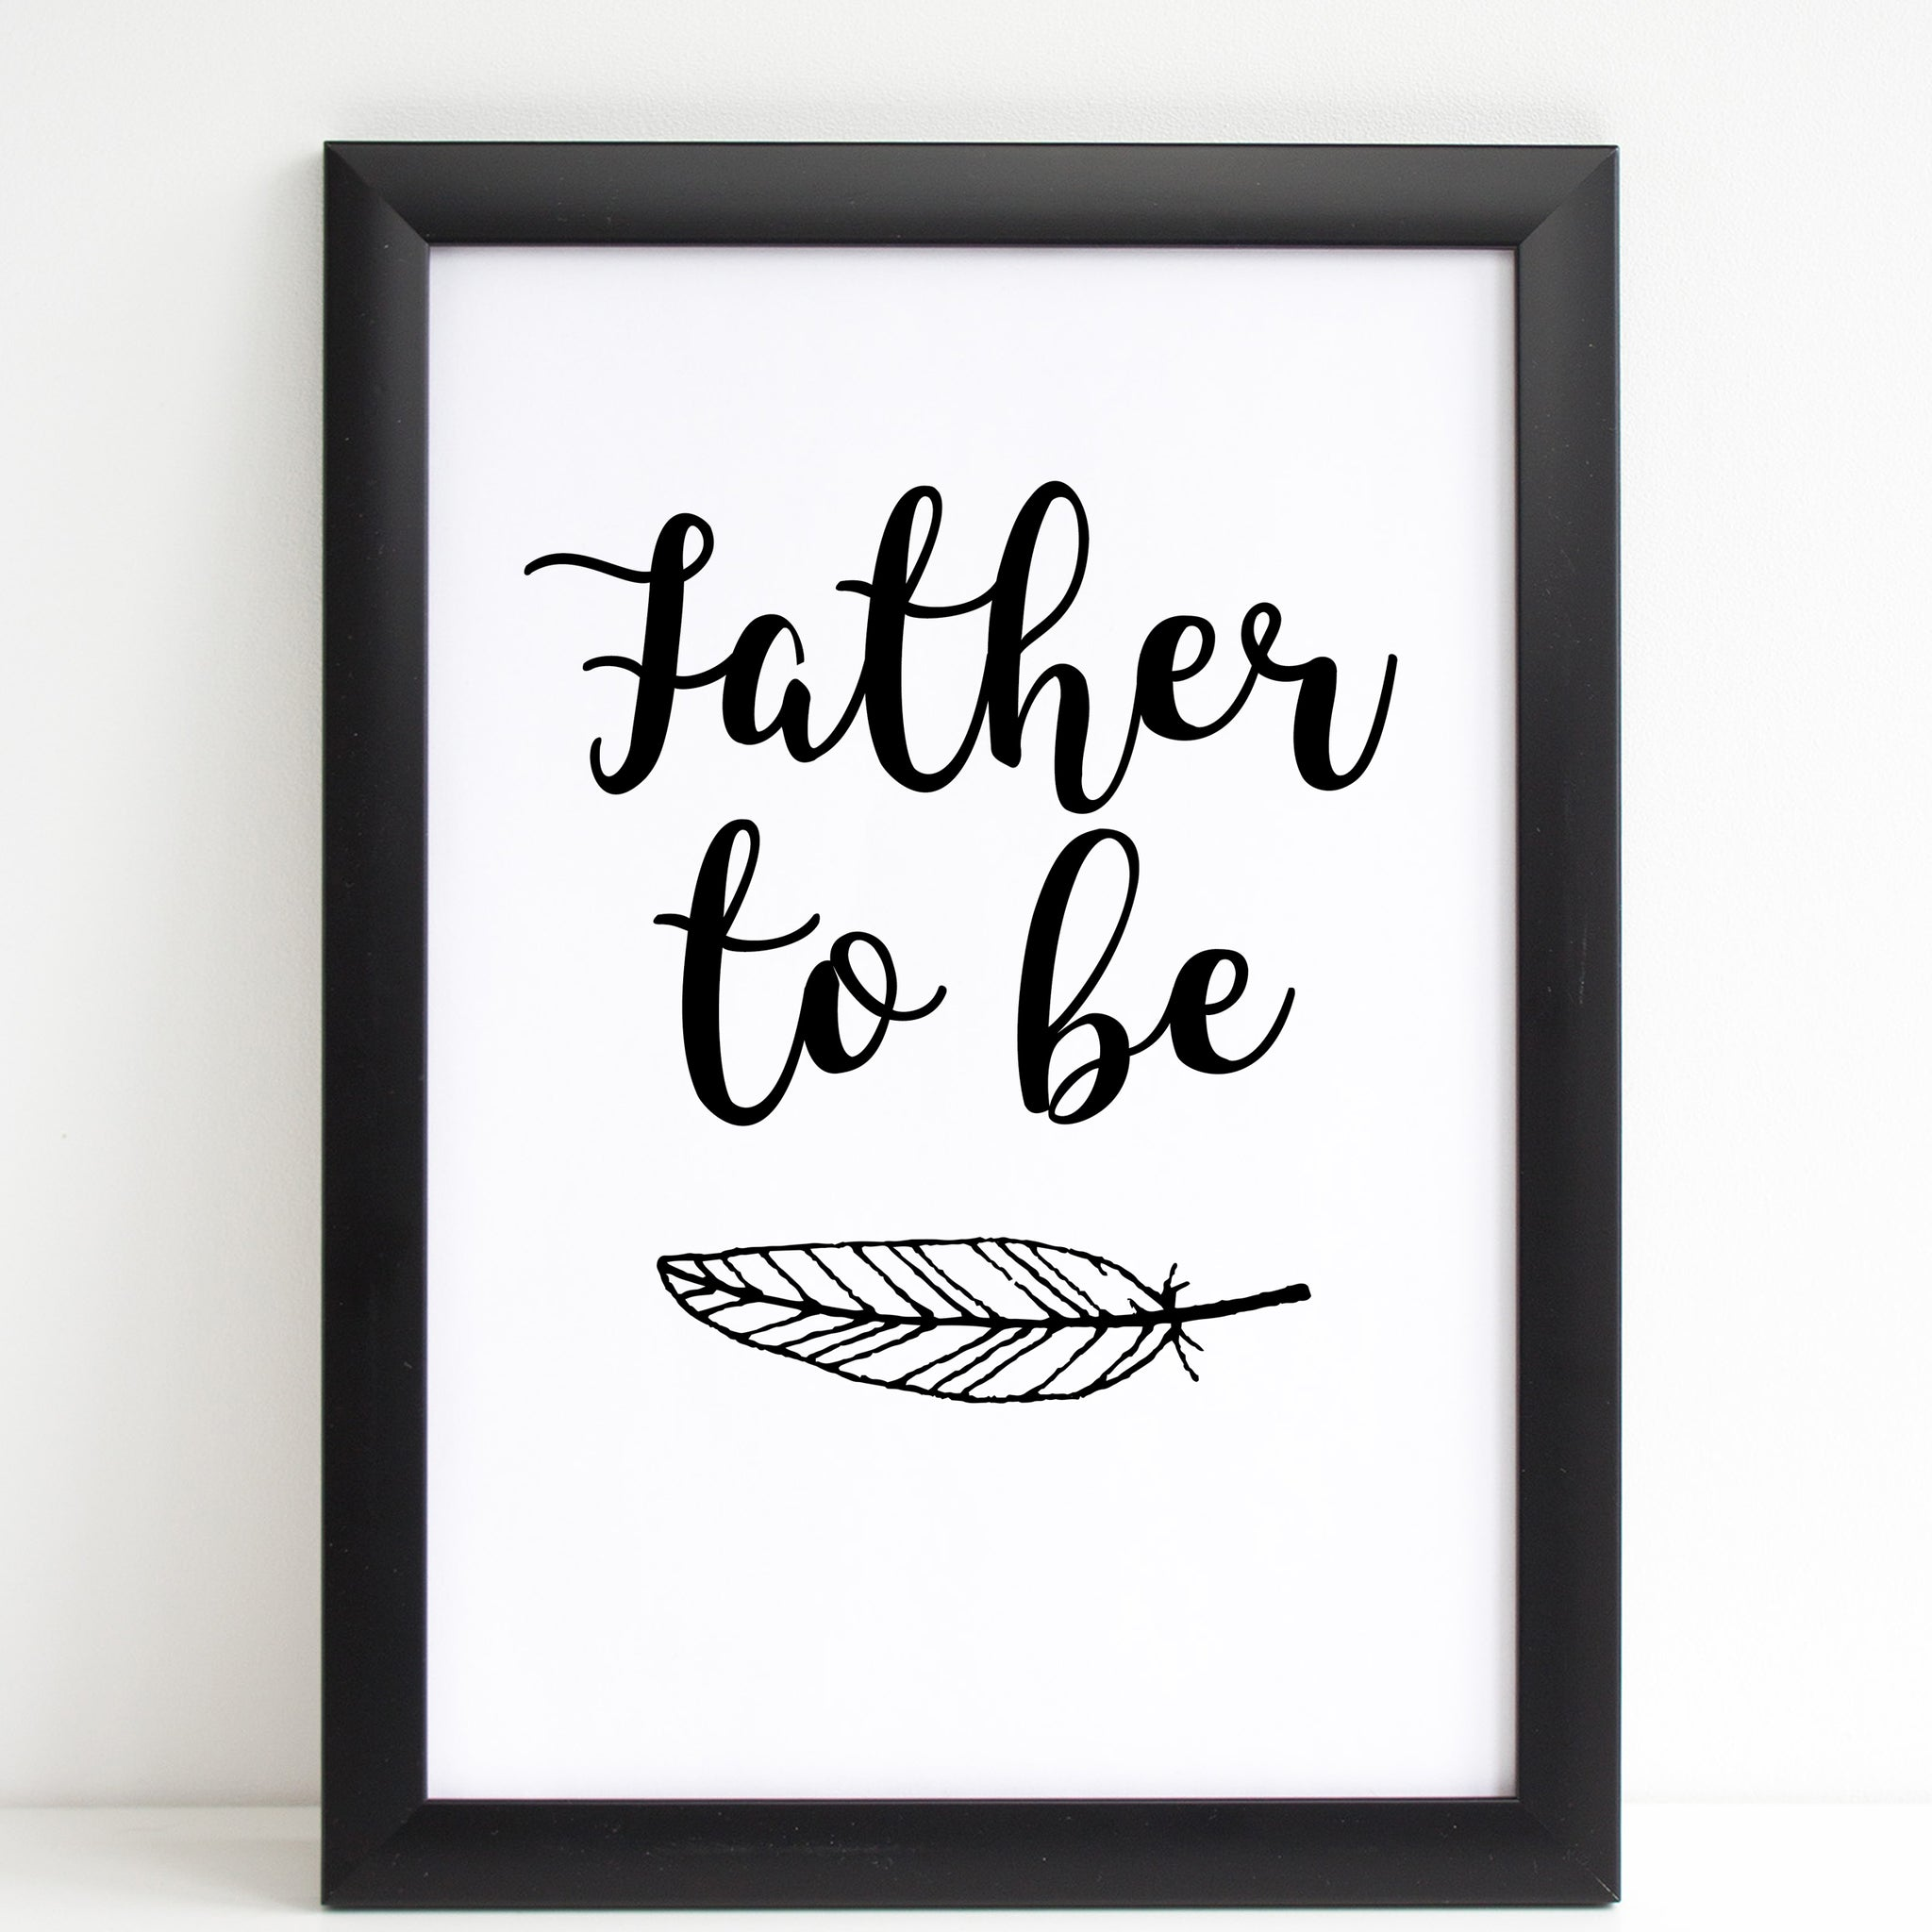 Fathers Day Print 'Father To Be' Poster Pregnancy Gift, A4 or A3, Framed Available